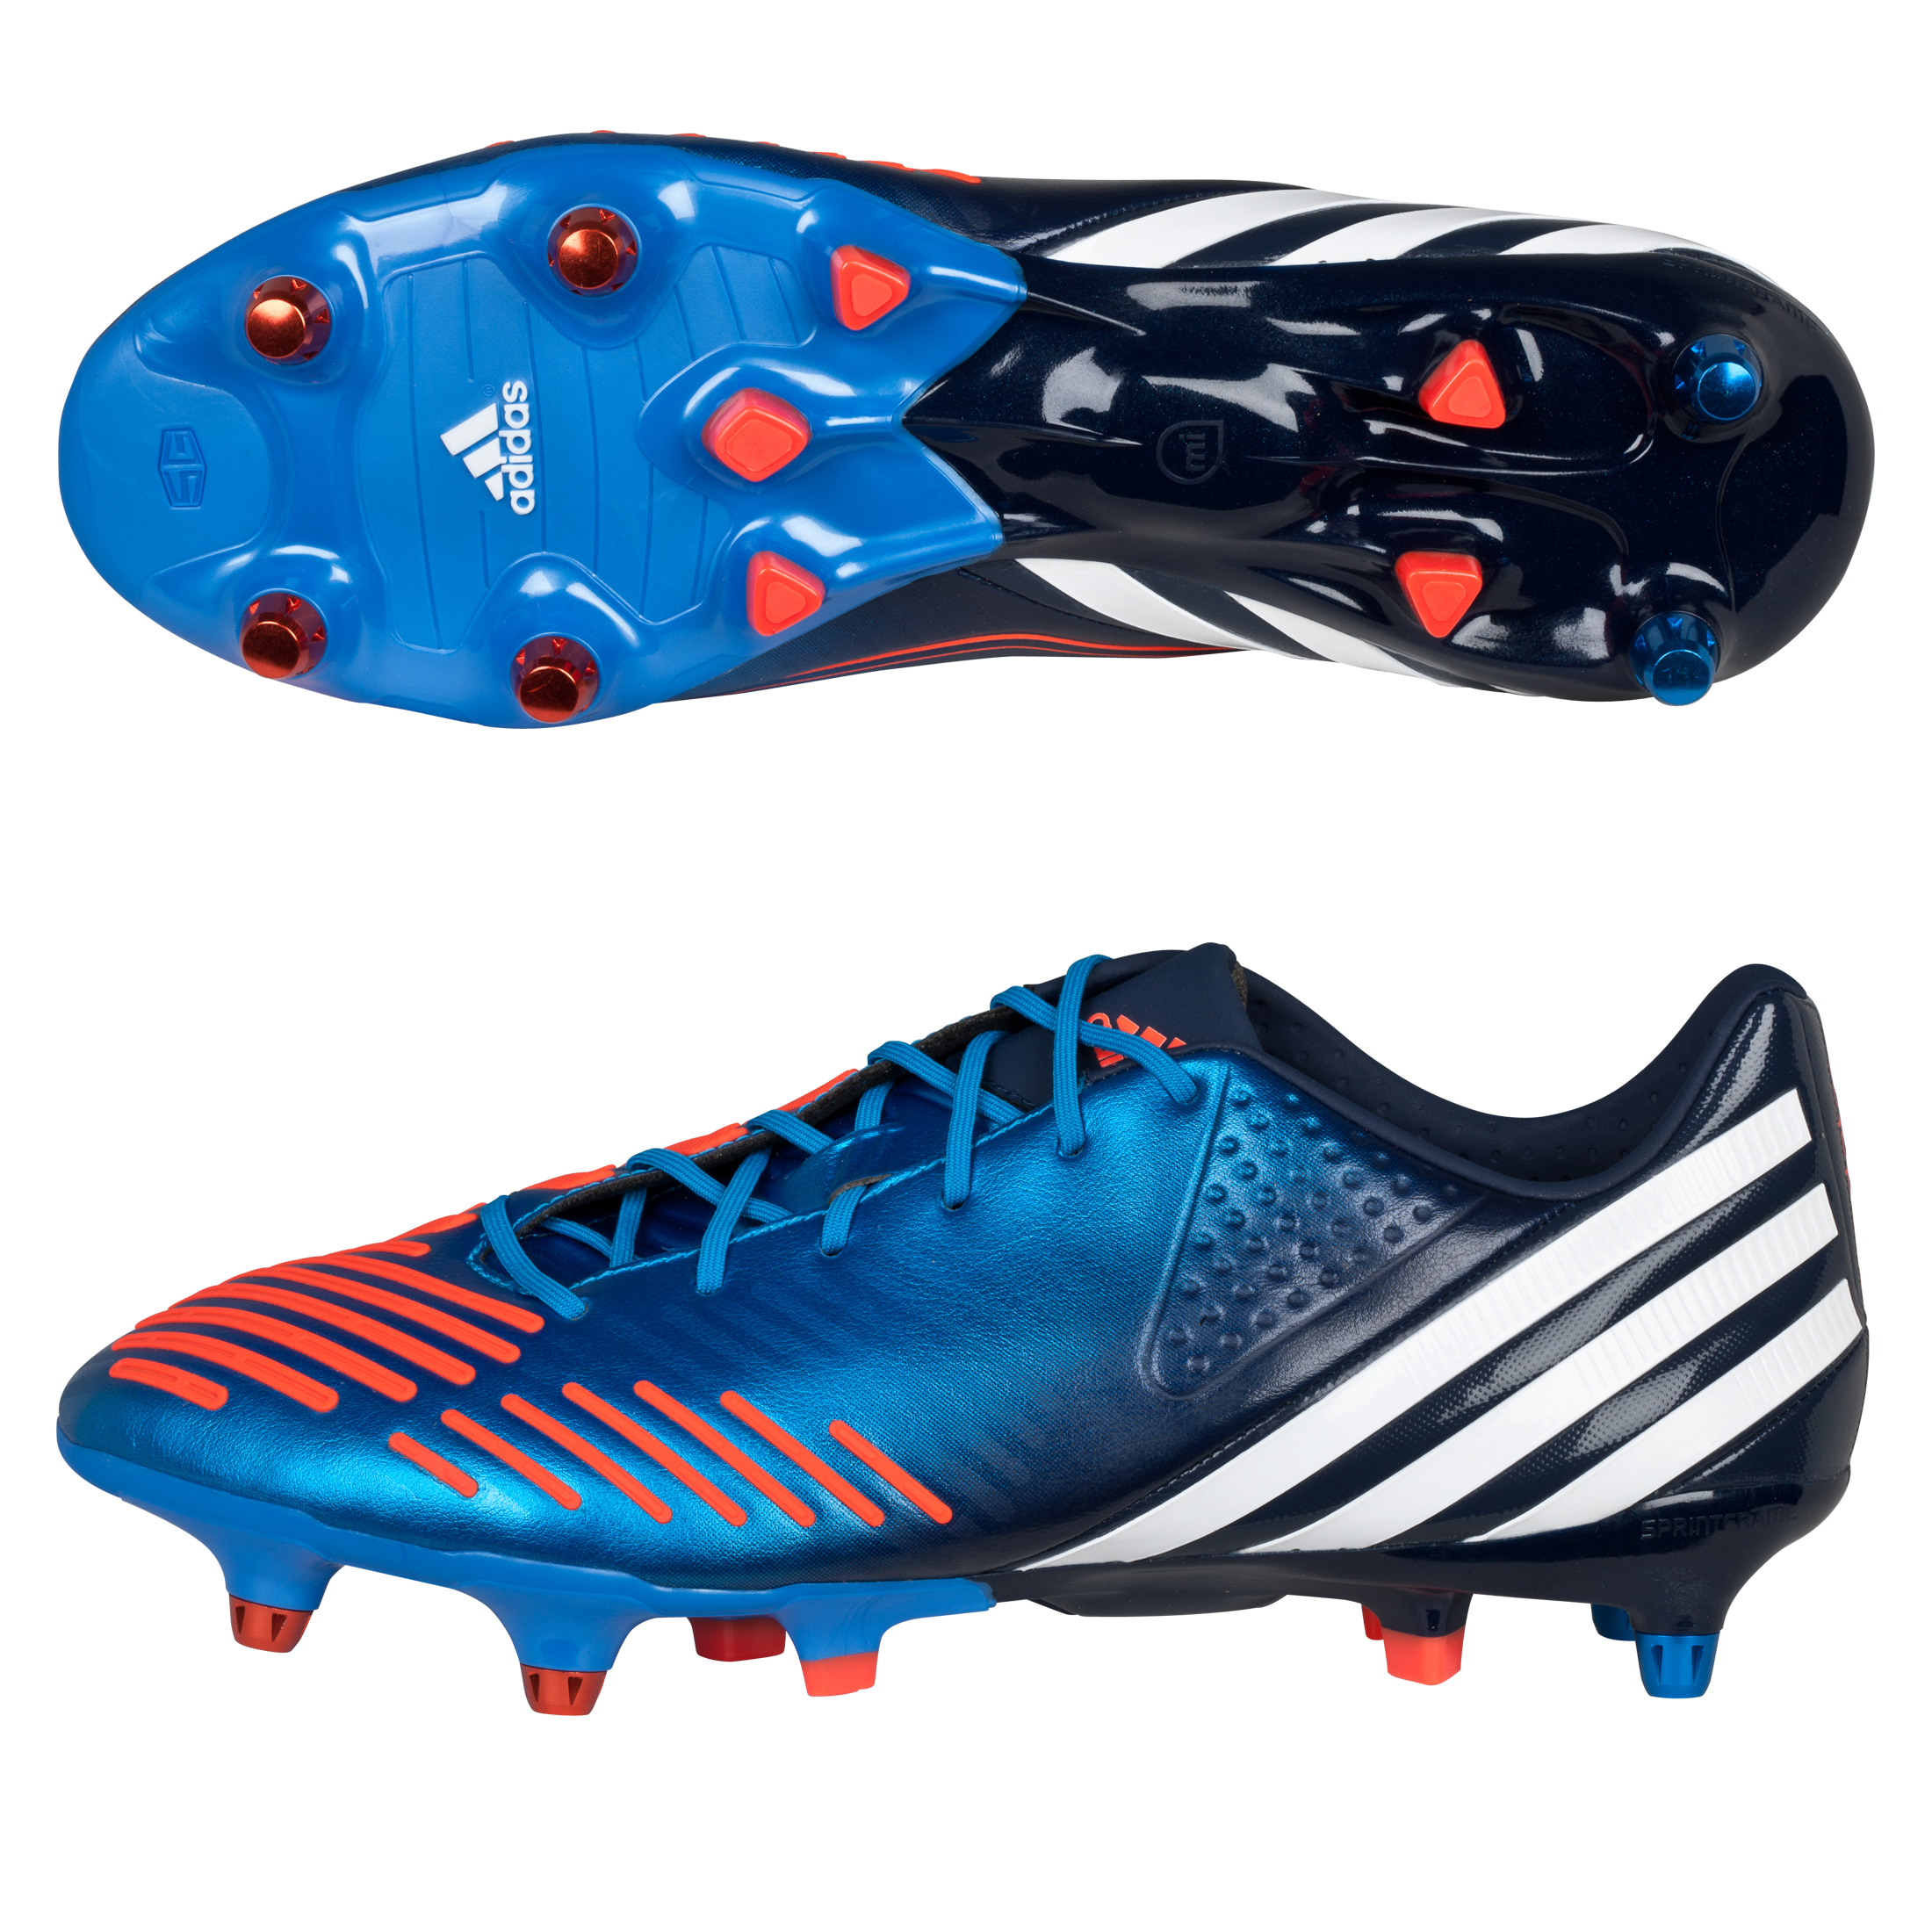 Adidas Predator LZ XTRX Soft Ground Football Boots - Bright Blue/White/Infrared